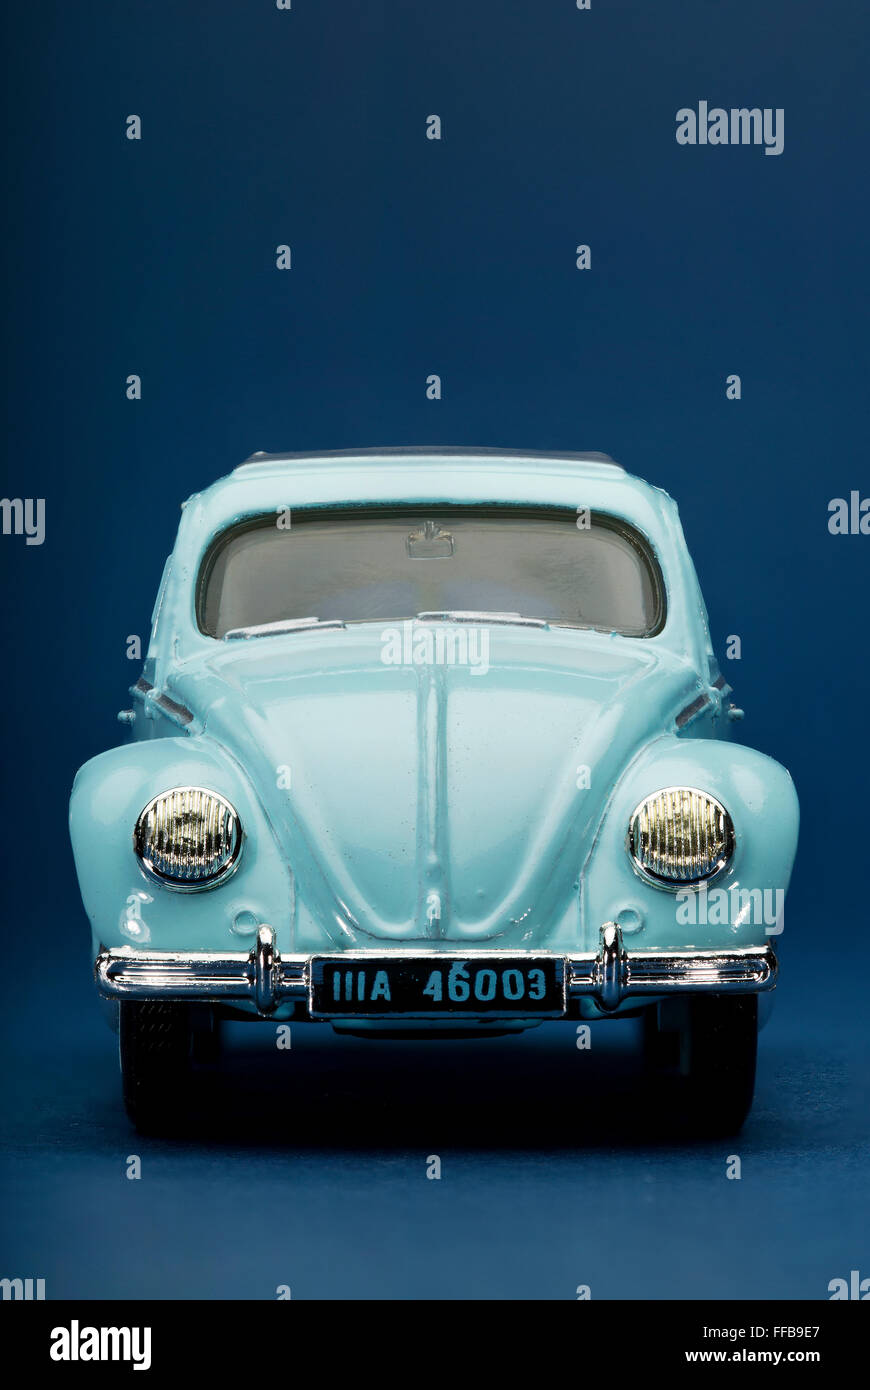 Volkswagen VW Beetle Dinky Toy diecast model car - Stock Image